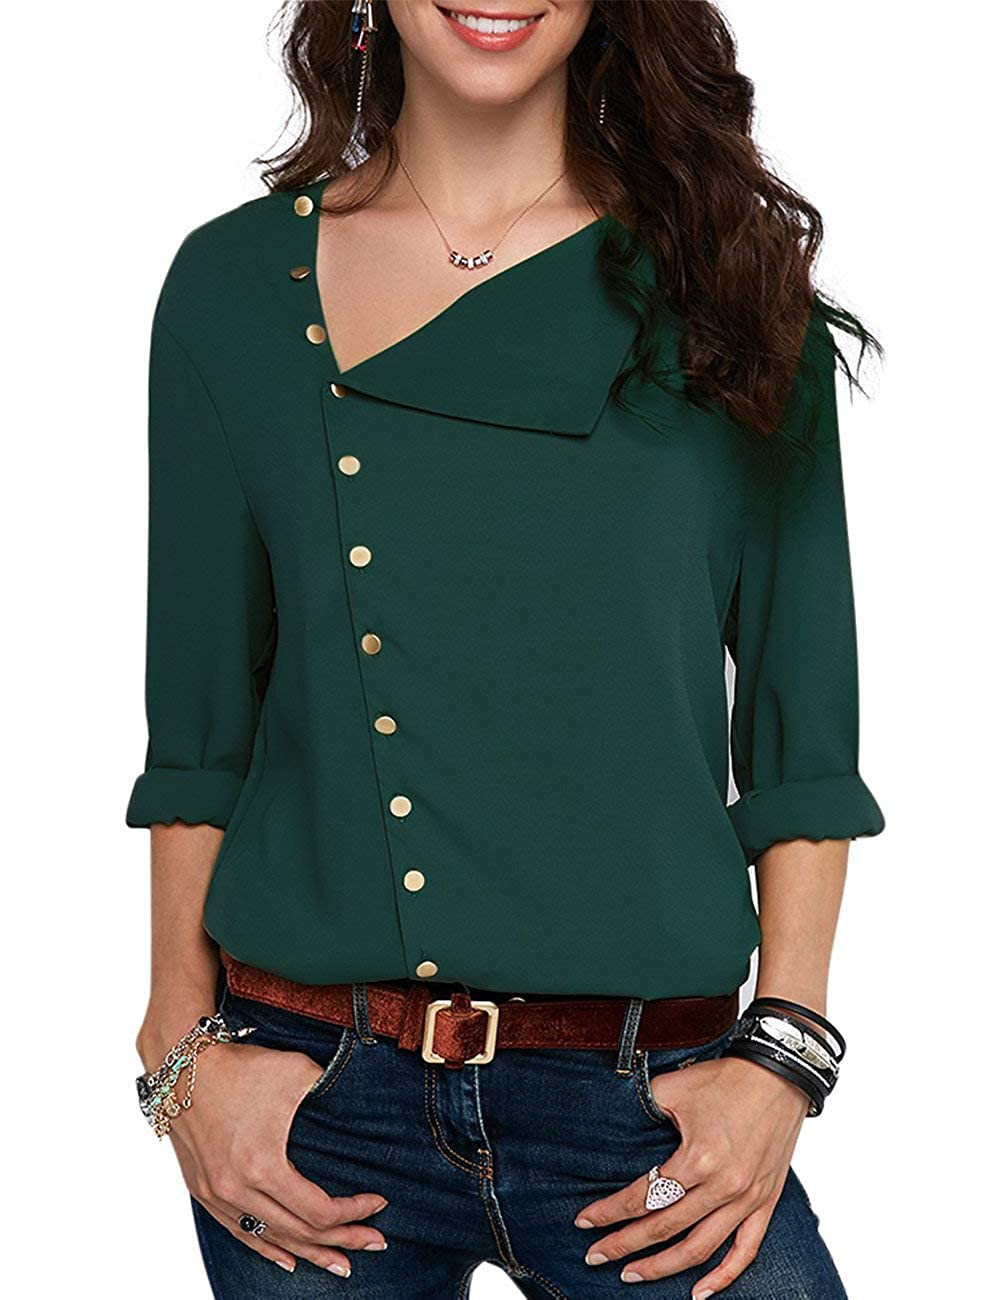 CCBETTER Women Long Sleeve Chiffon Shirts Button Detail Casual Loose Blouse Tops